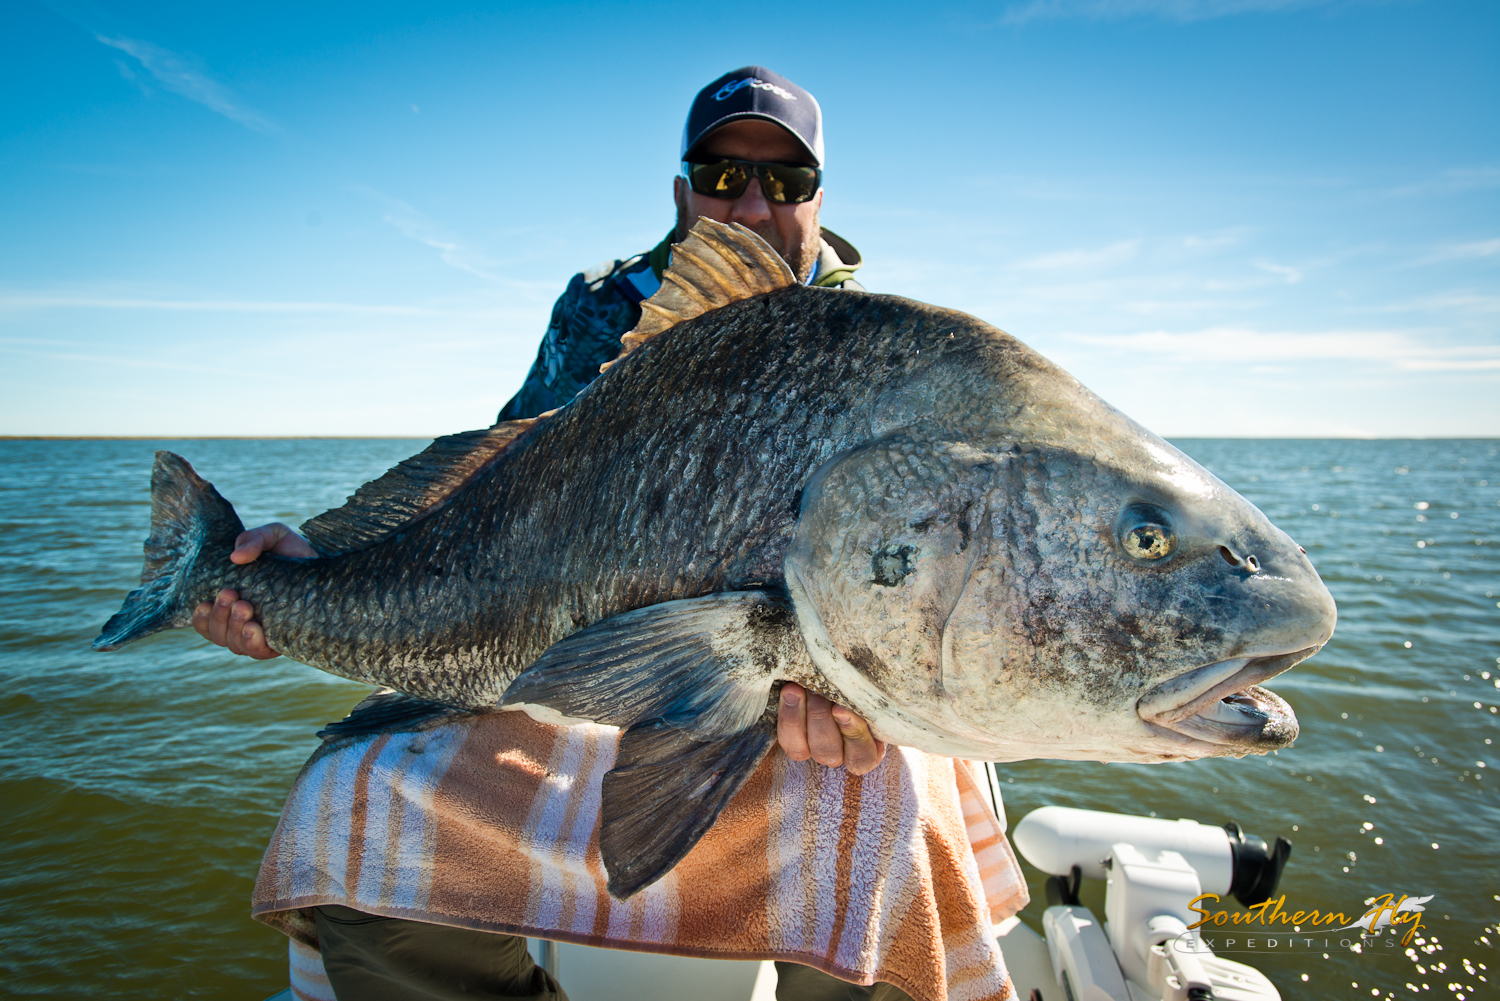 Minnesota Anglers Fly Fishing New Orleans Southern Fly Expeditions